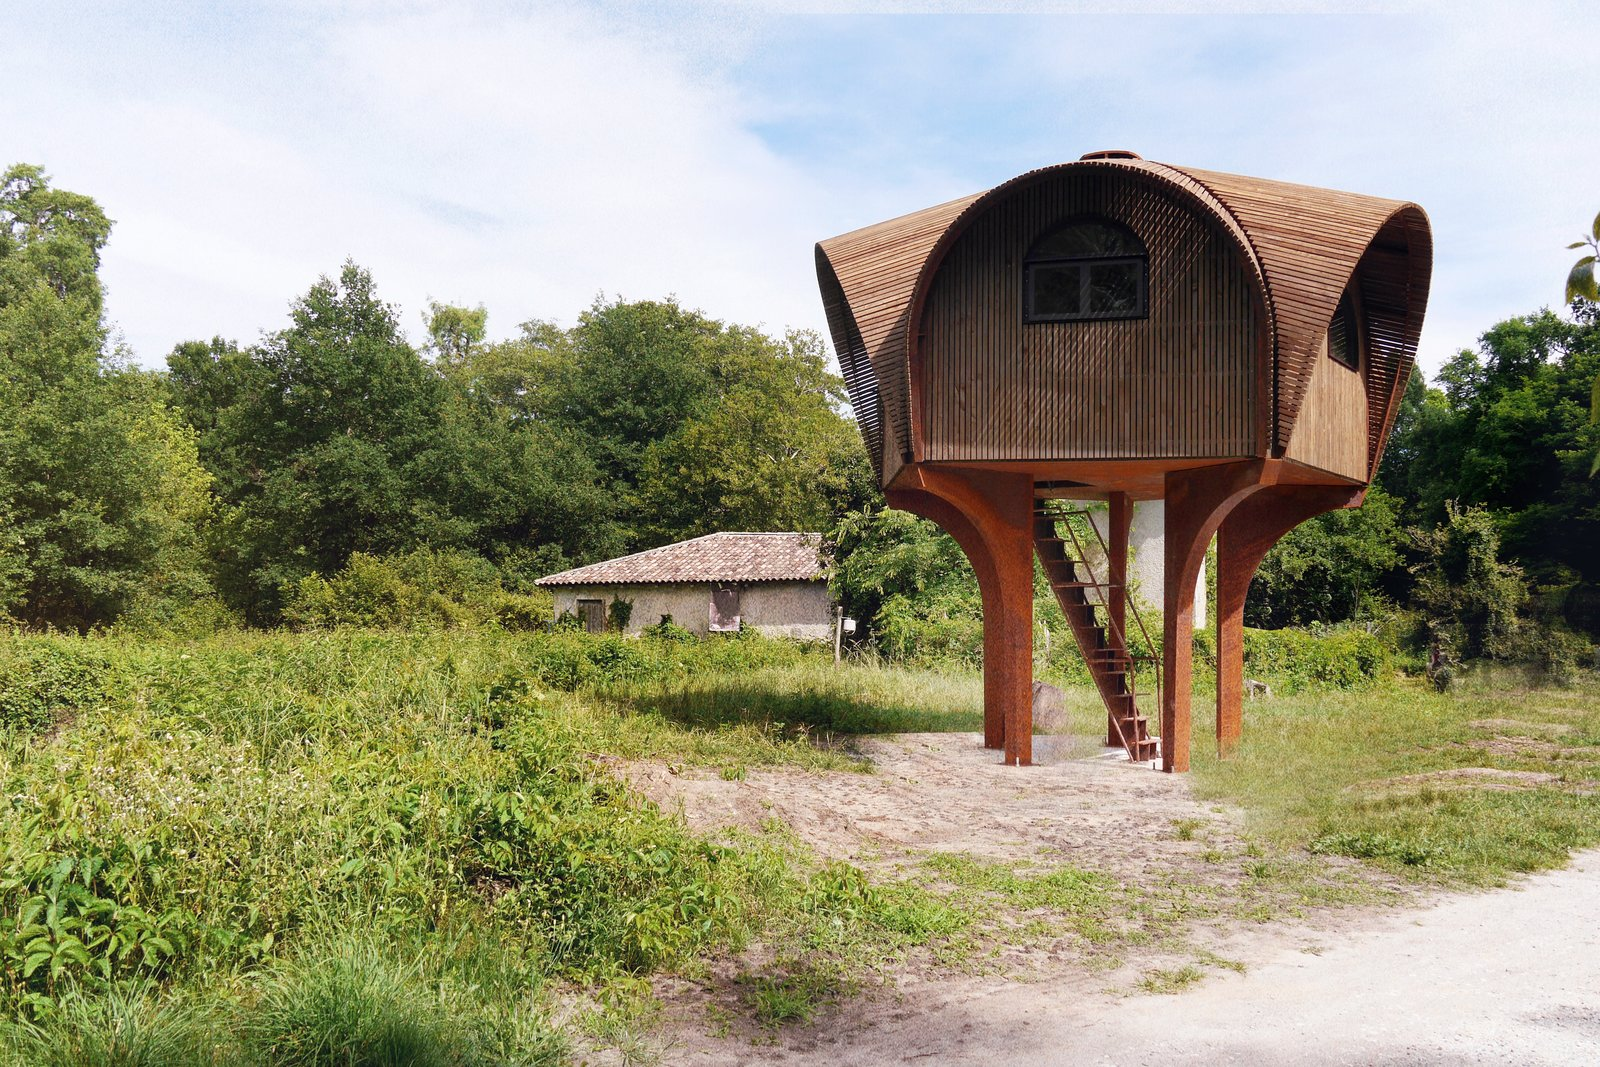 Photo 3 of 5 in Le Haut Perché Offers Free Shelter For Hikers in the Rustic Countryside of Bordeaux